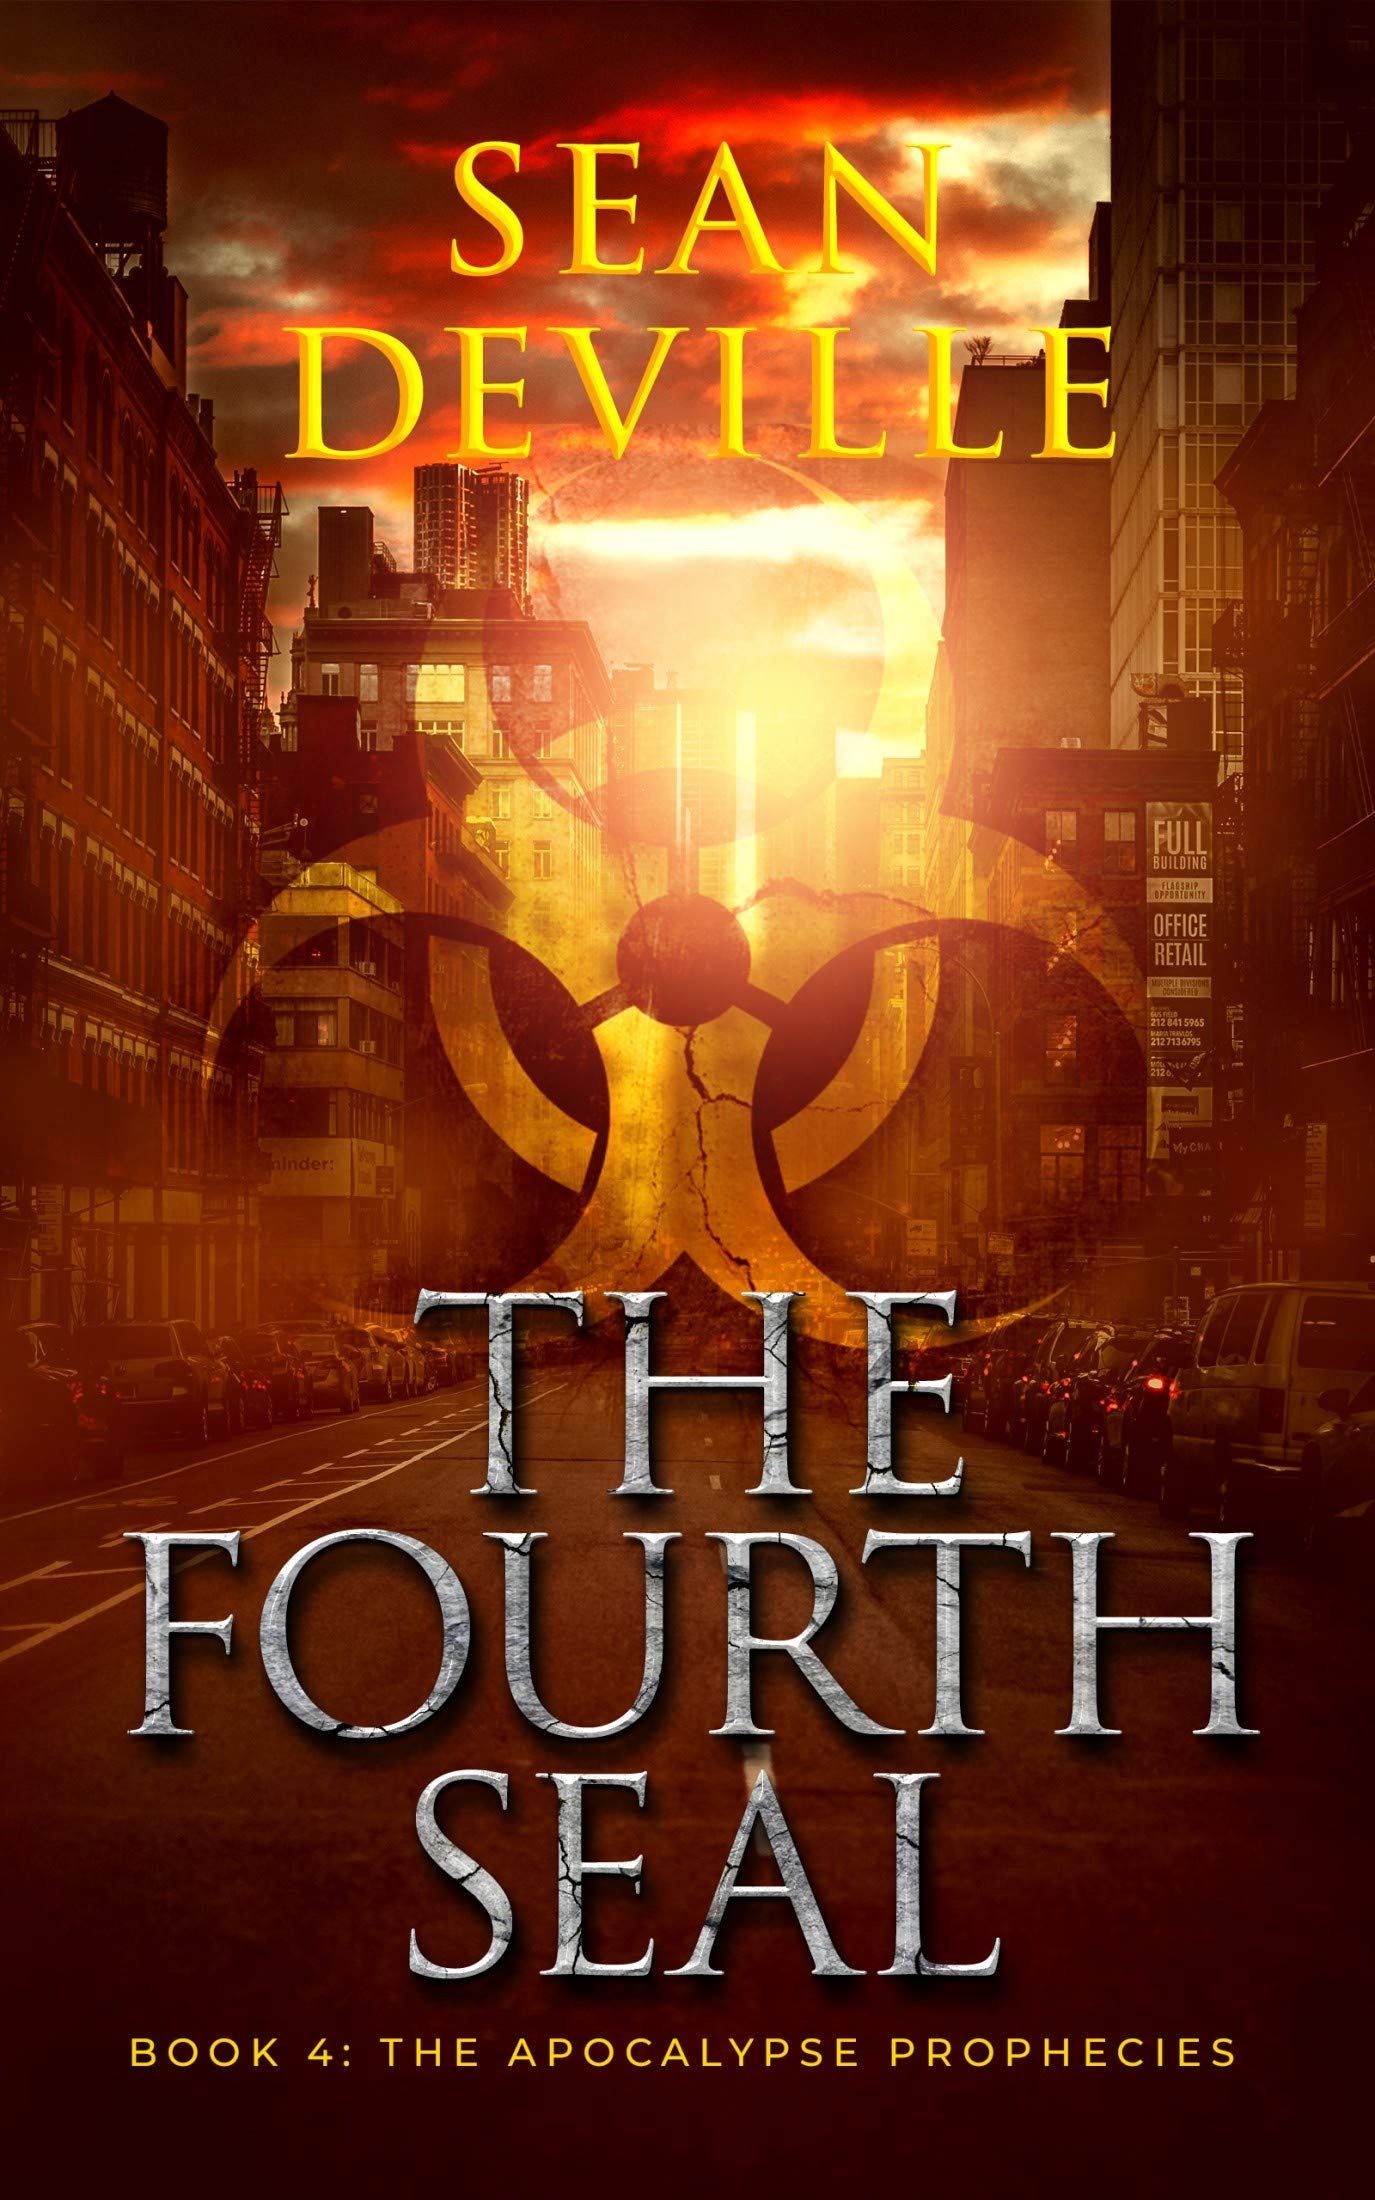 The Fourth Seal (The Apocalypse Prophecies Book 4)